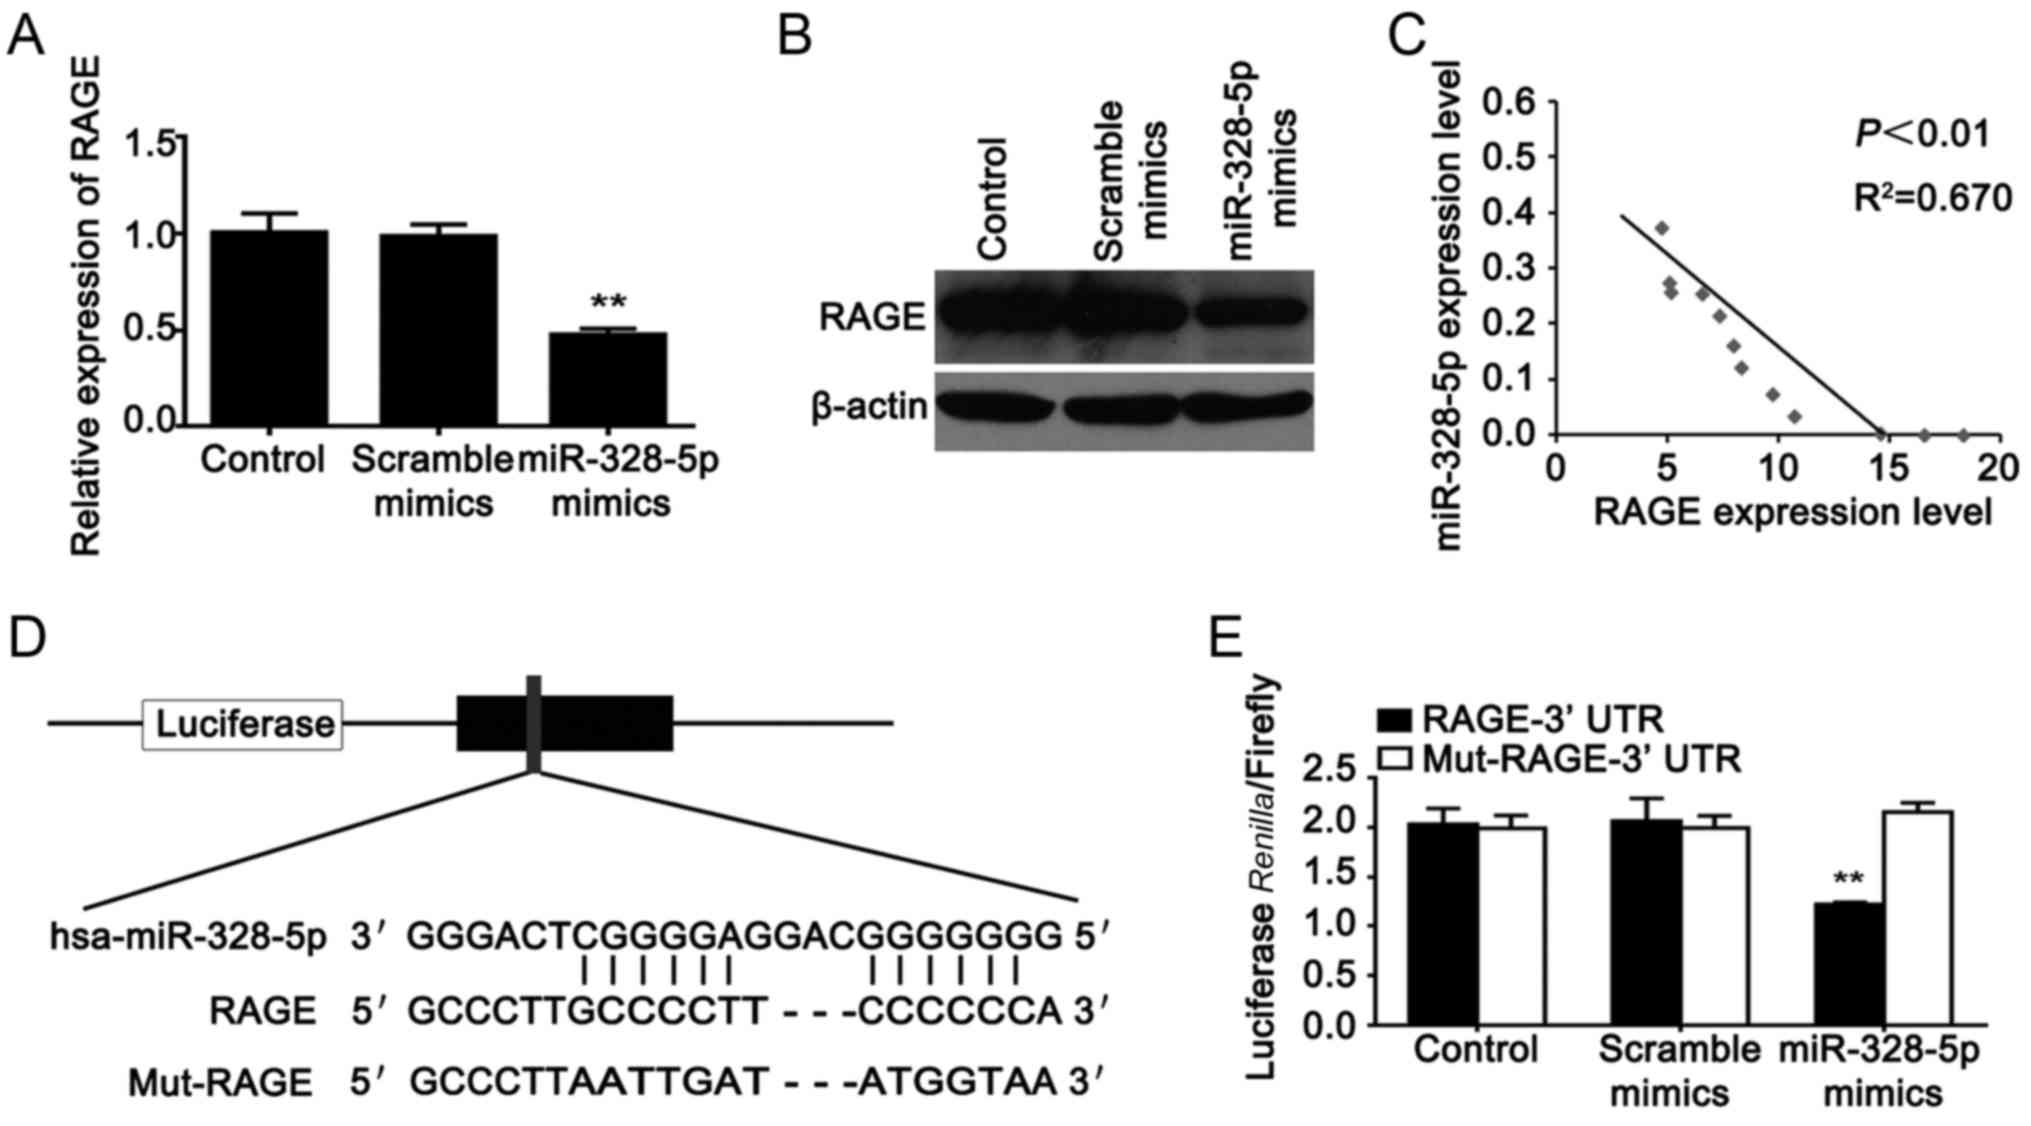 Mir 328 5p Inhibits Mda Mb 231 Breast Cancer Cell Proliferation By Kc 135 Engineering Schematics C The Relativity Rate Of And Rage In 13 Tissues D Predicted Binding Site